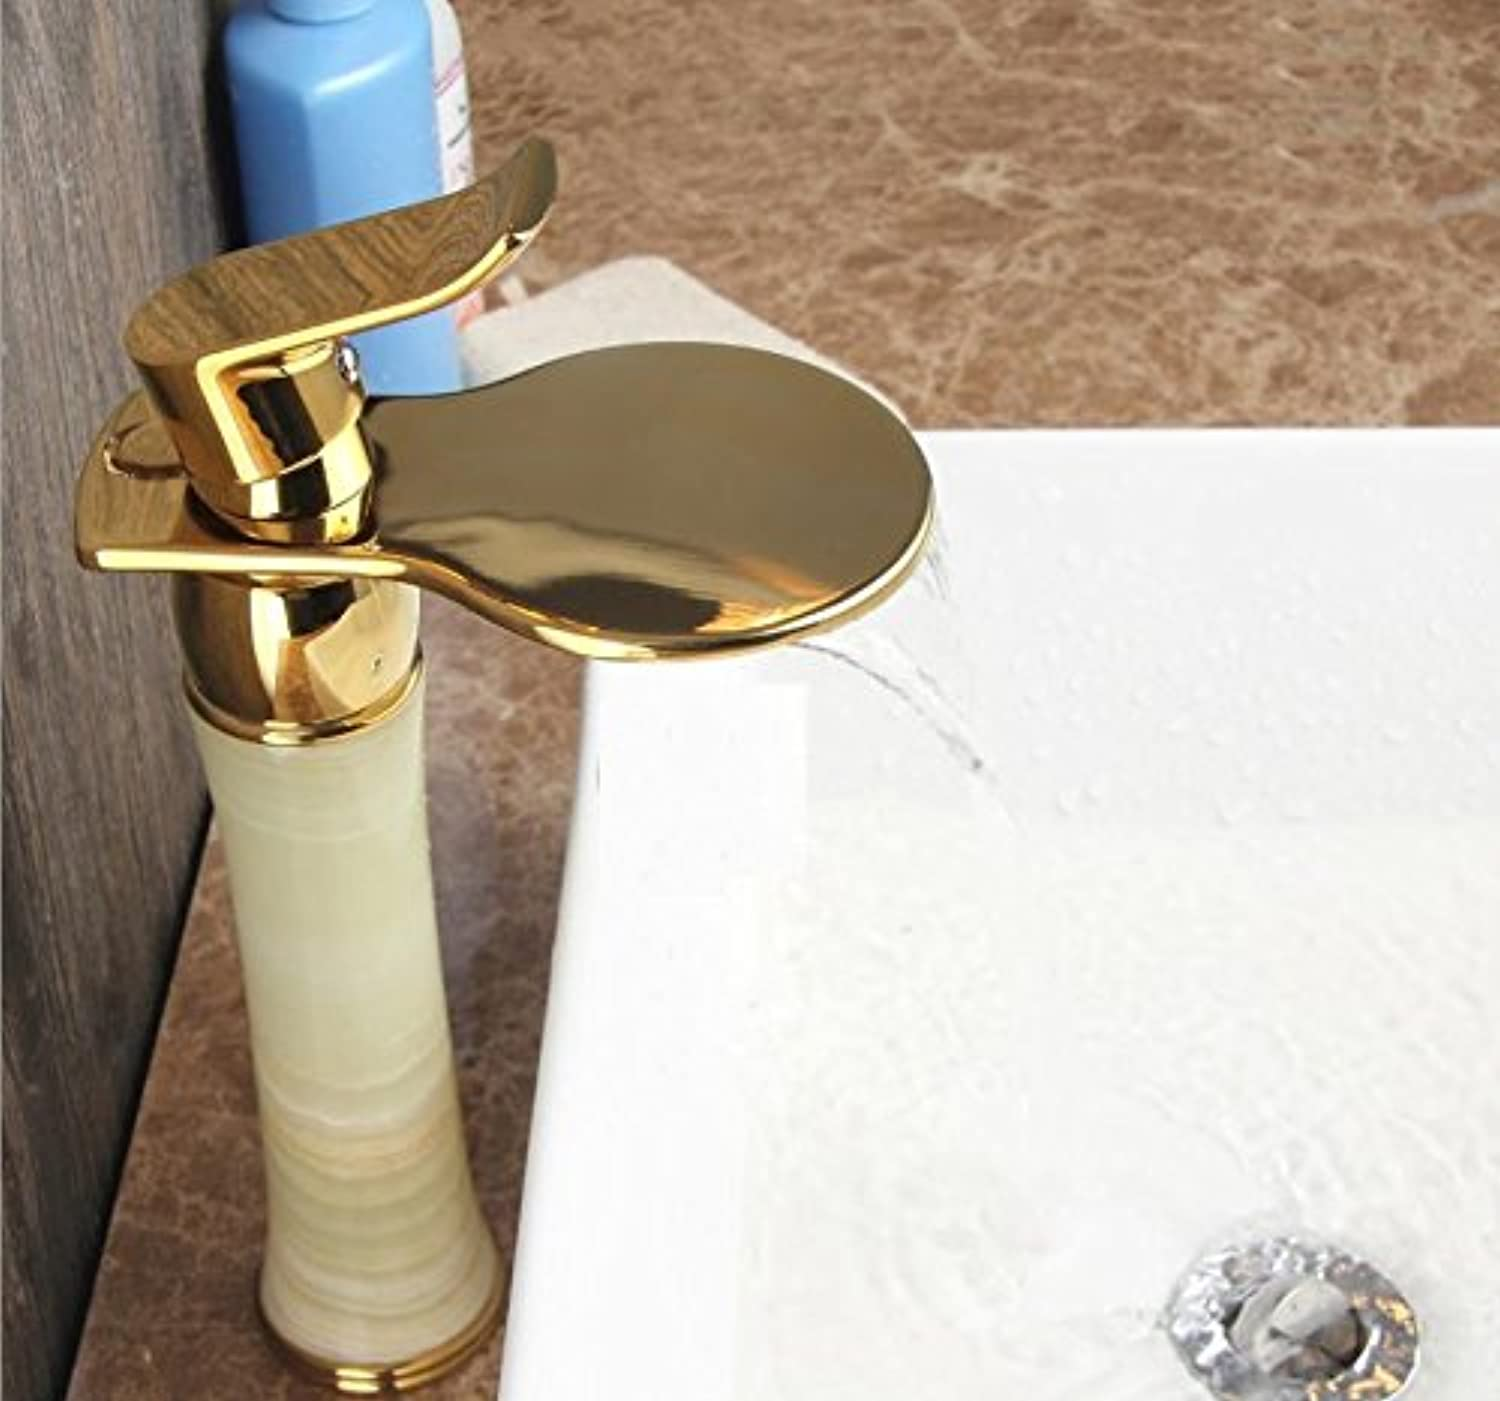 SADASD Contemporary Bathroom Full Copper Basin Faucet Mixer Chrome Plated gold Jade Basin Sink Mixer Tap Ceramic Spool Single Hole Single Handle Cold Water With G1 2 Hose